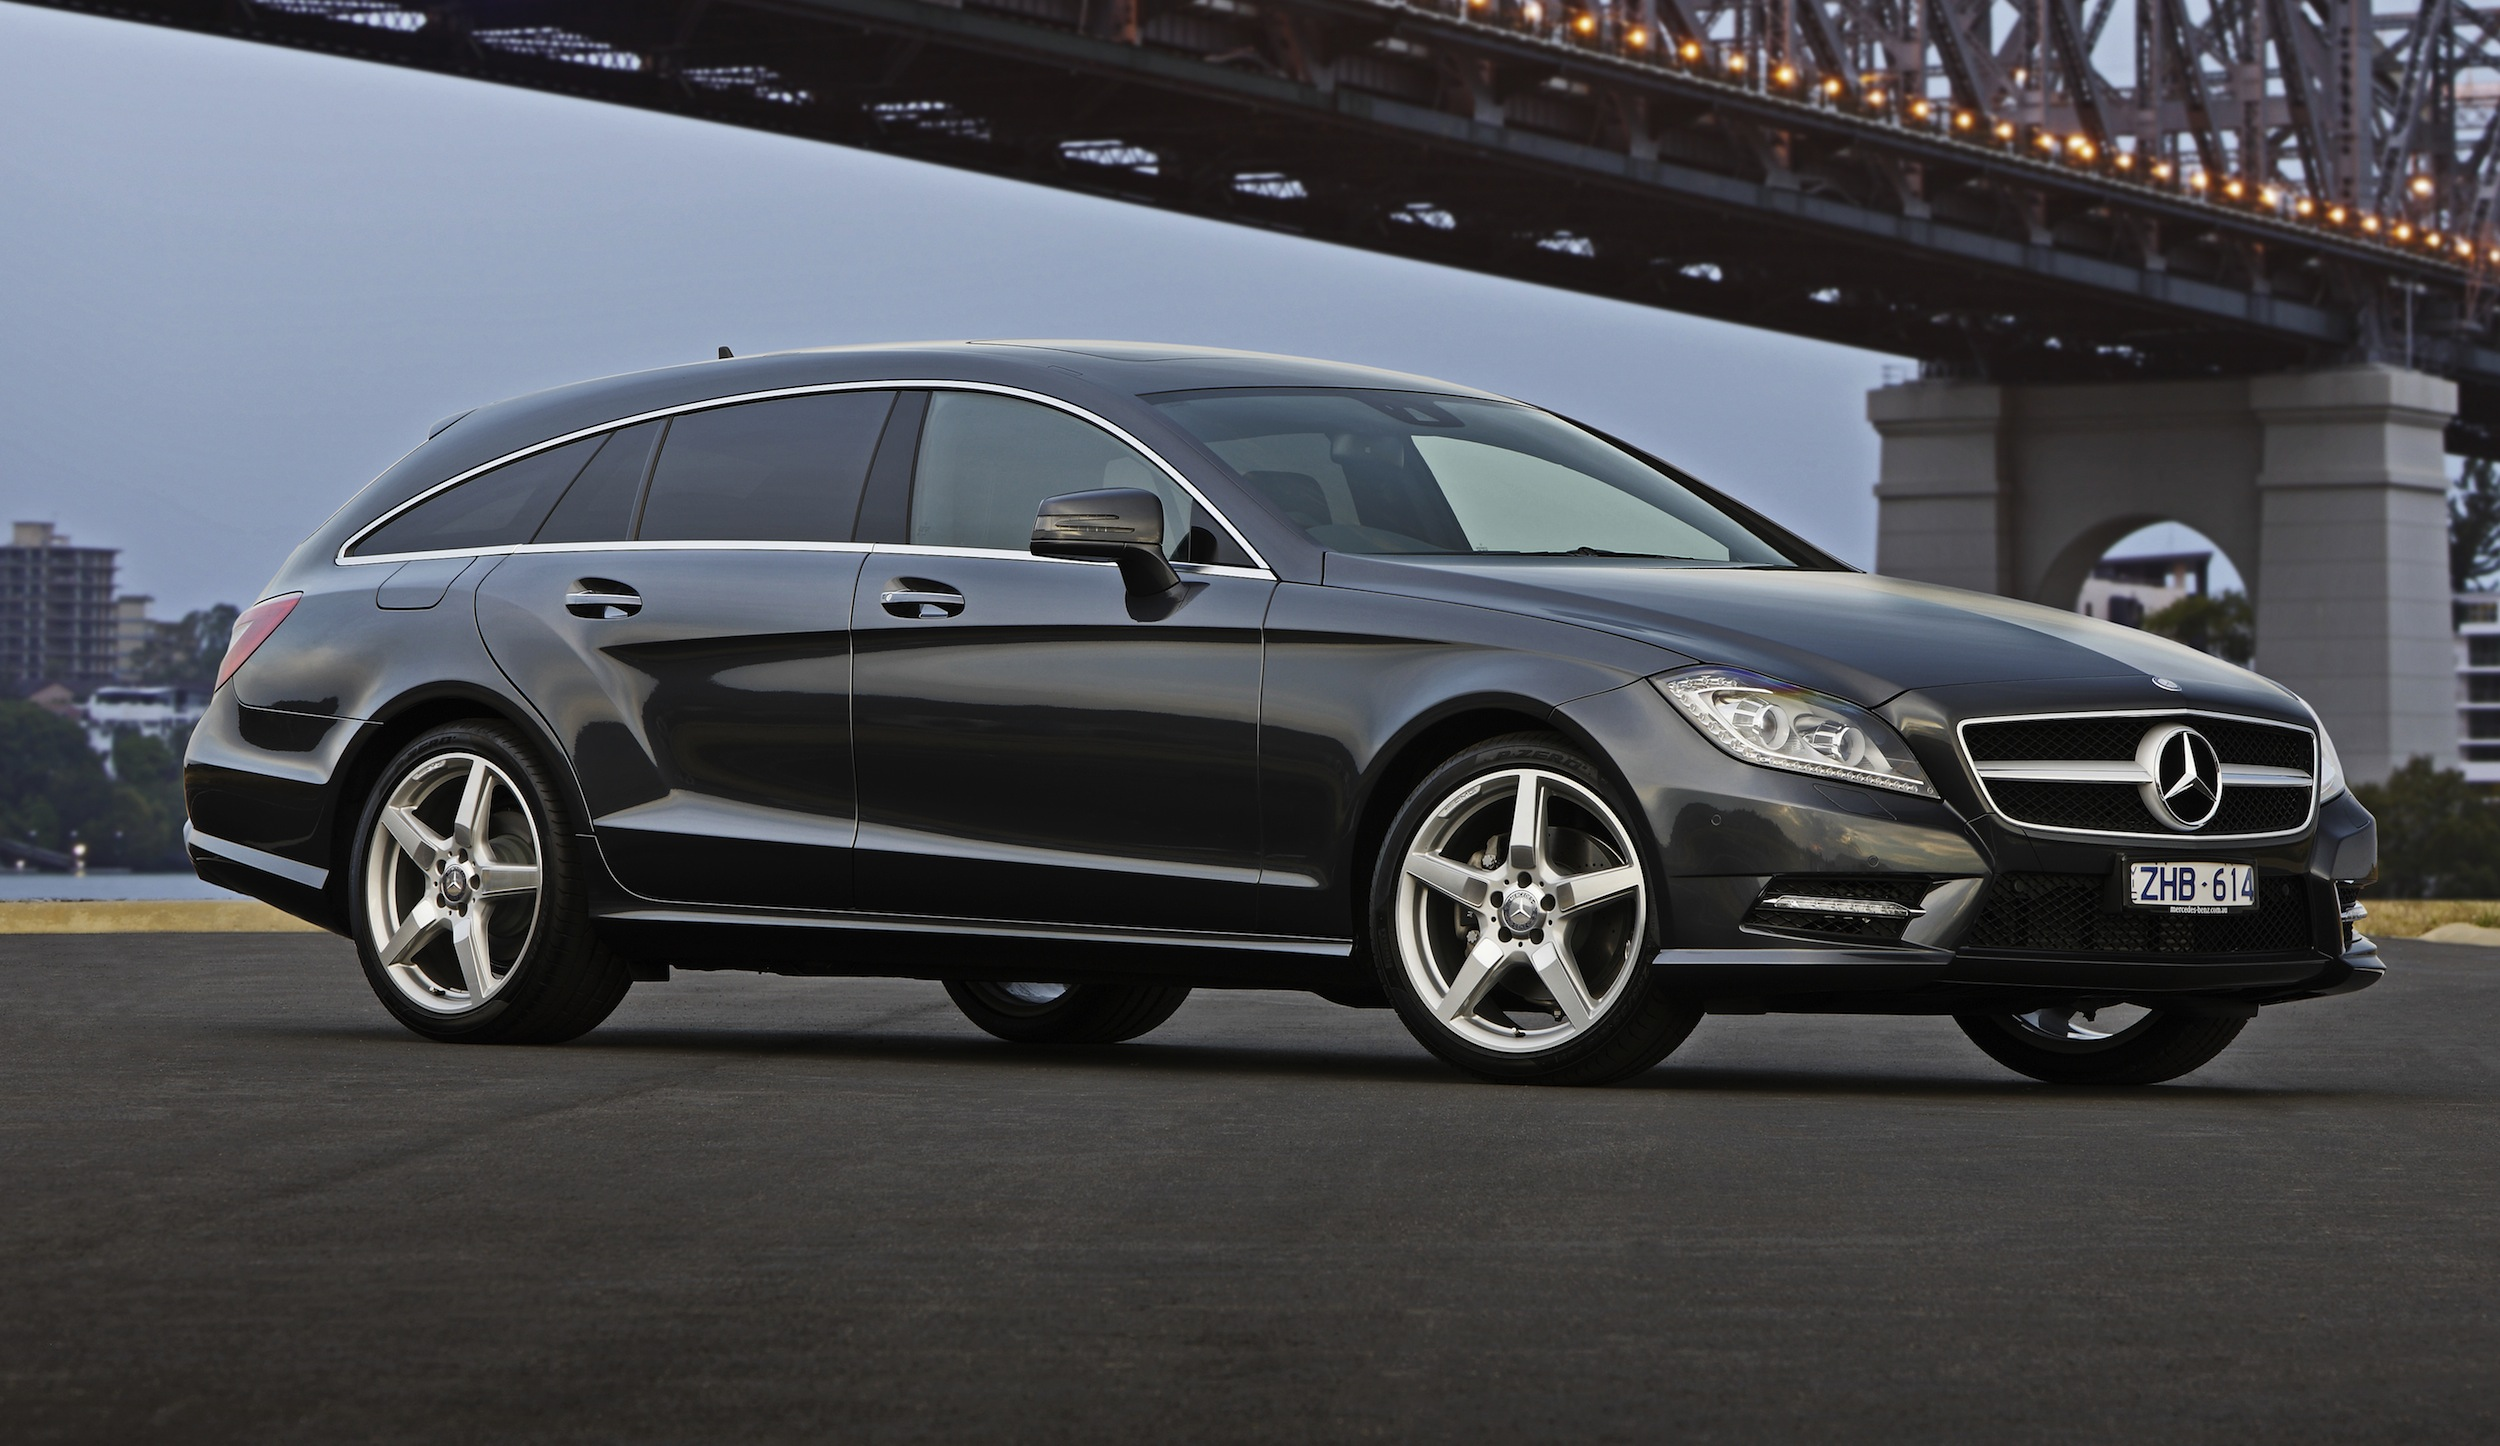 Mercedes Benz Cls350 Shooting Brake Review Caradvice